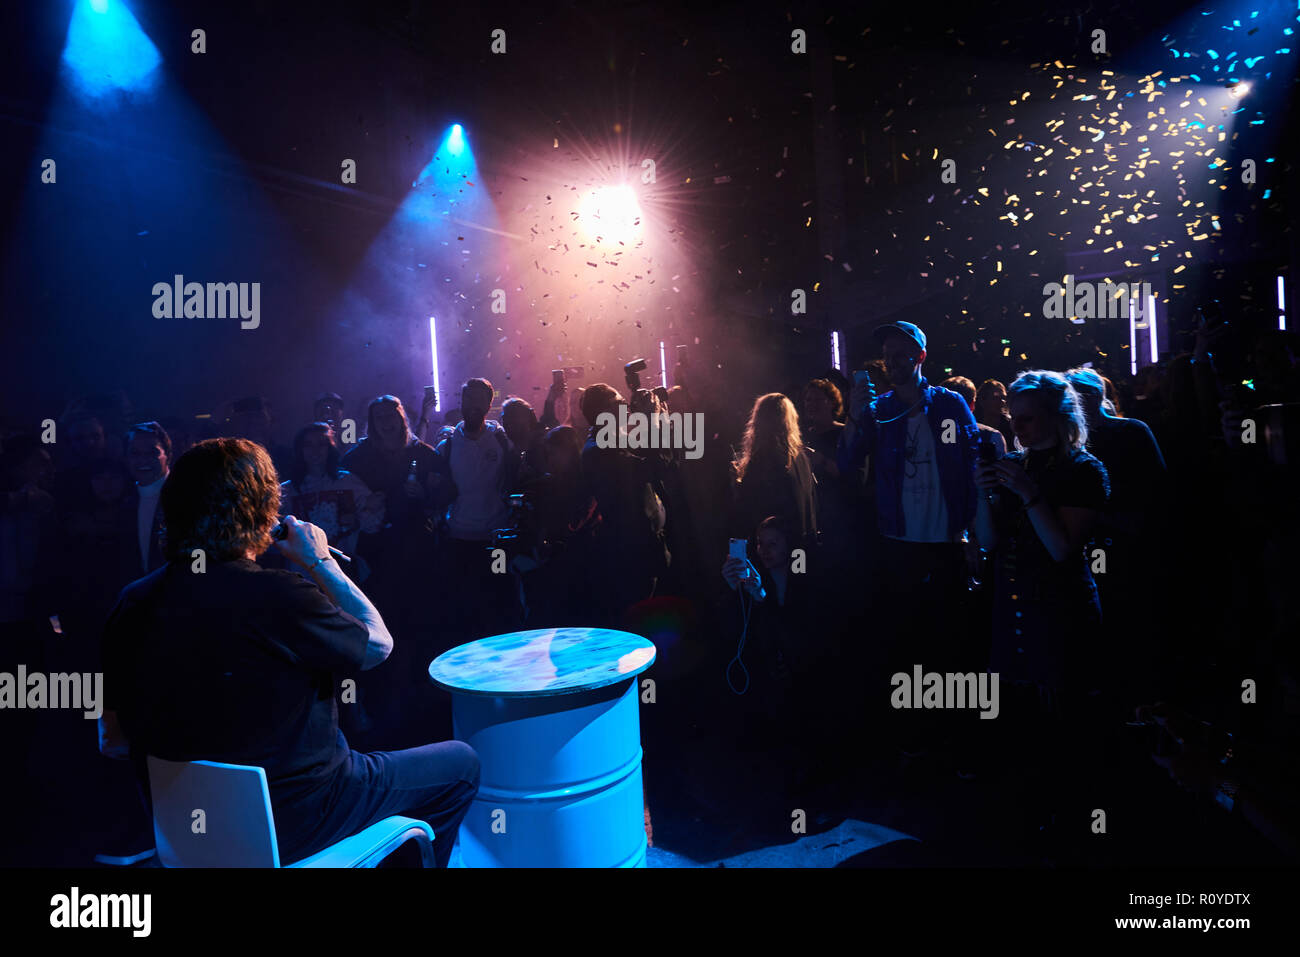 Berlin, Germany. 08th Nov, 2018. The pop singer Tony Marshall sings as a surprise guest at the premiere party of the Amazon Prime series 'Beat' at Kraftwerk Berlin. Credit: Annette Riedl/dpa-Zentralbild/ZB/dpa/Alamy Live News - Stock Image